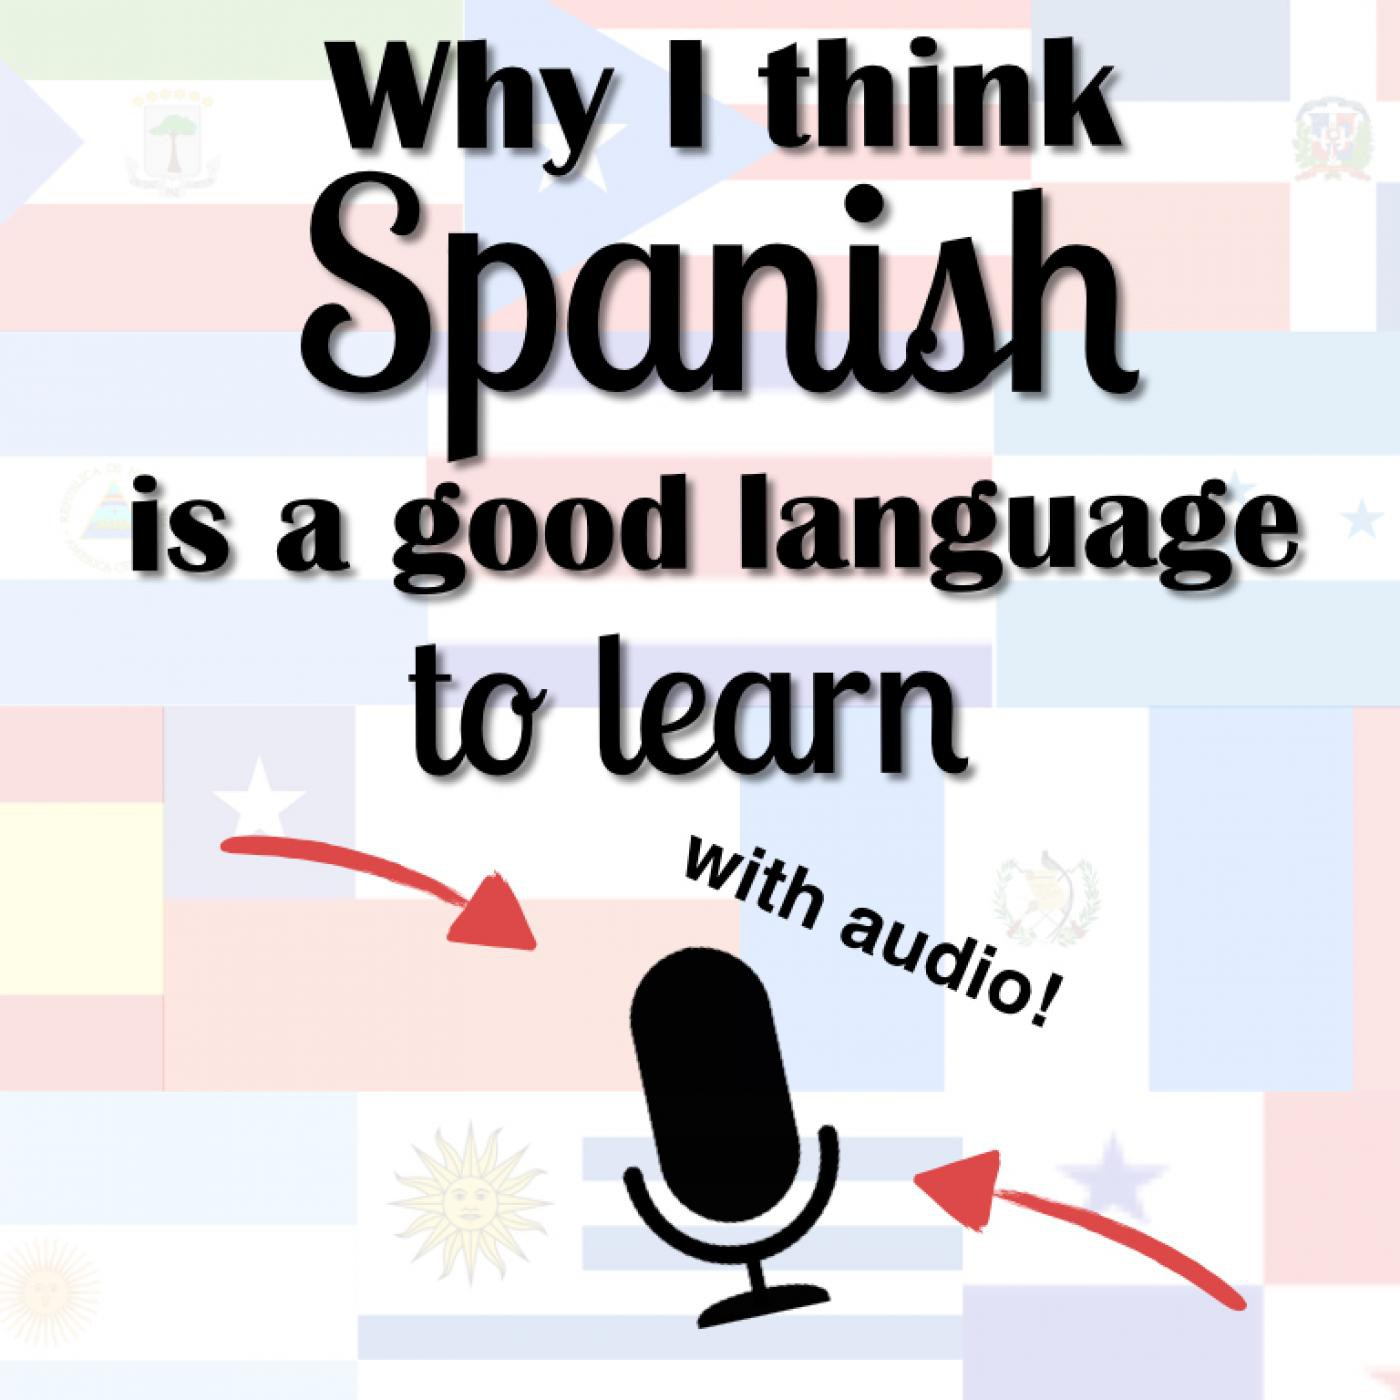 Why I think Spanish is a good language to learn